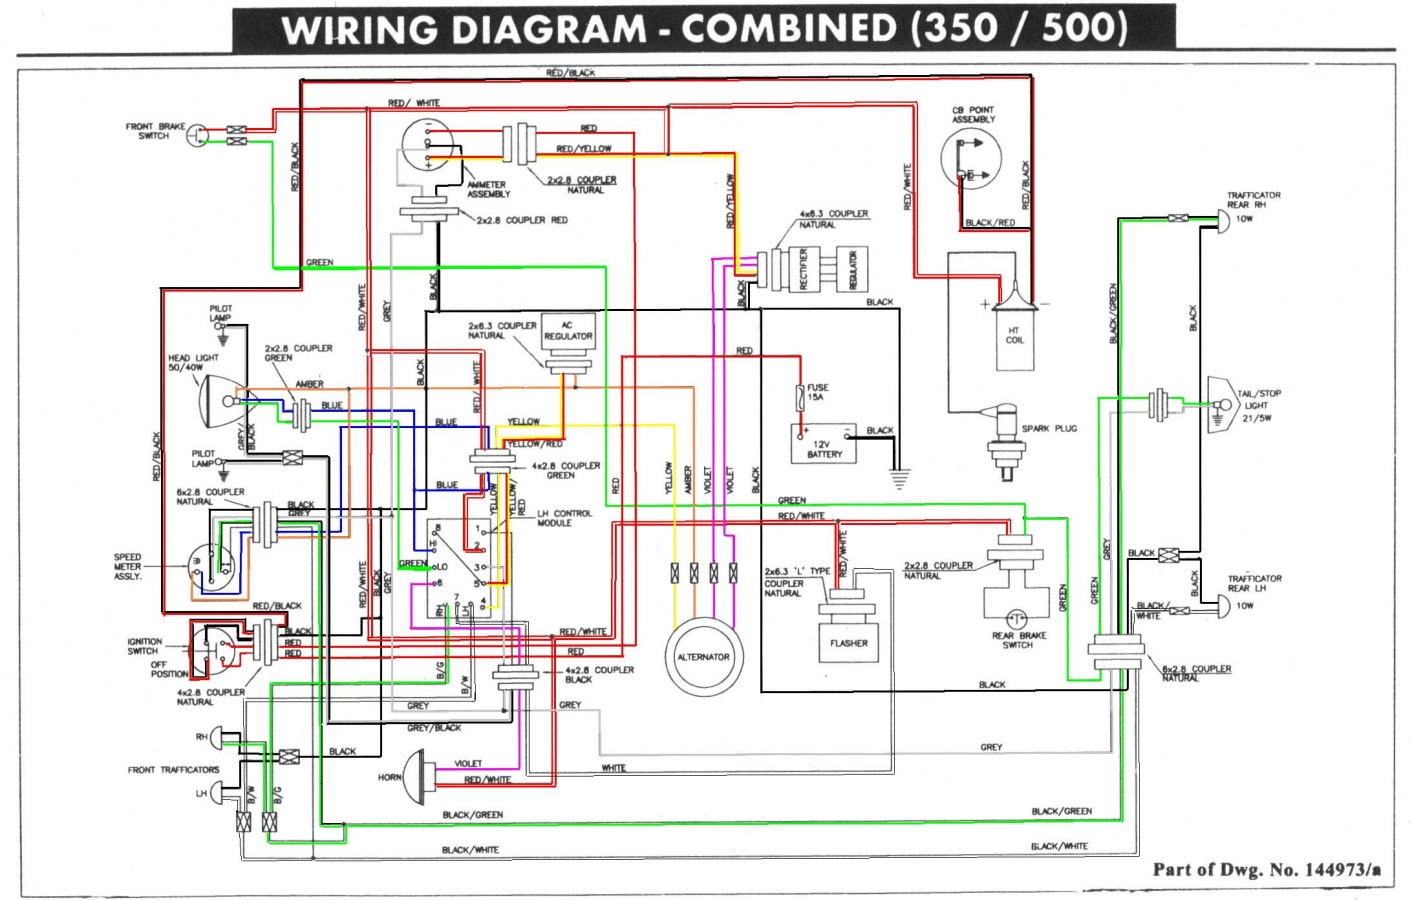 royal enfield thunderbird 350 wiring diagram royal wiring Basic Electrical Wiring Diagrams at fashall.co